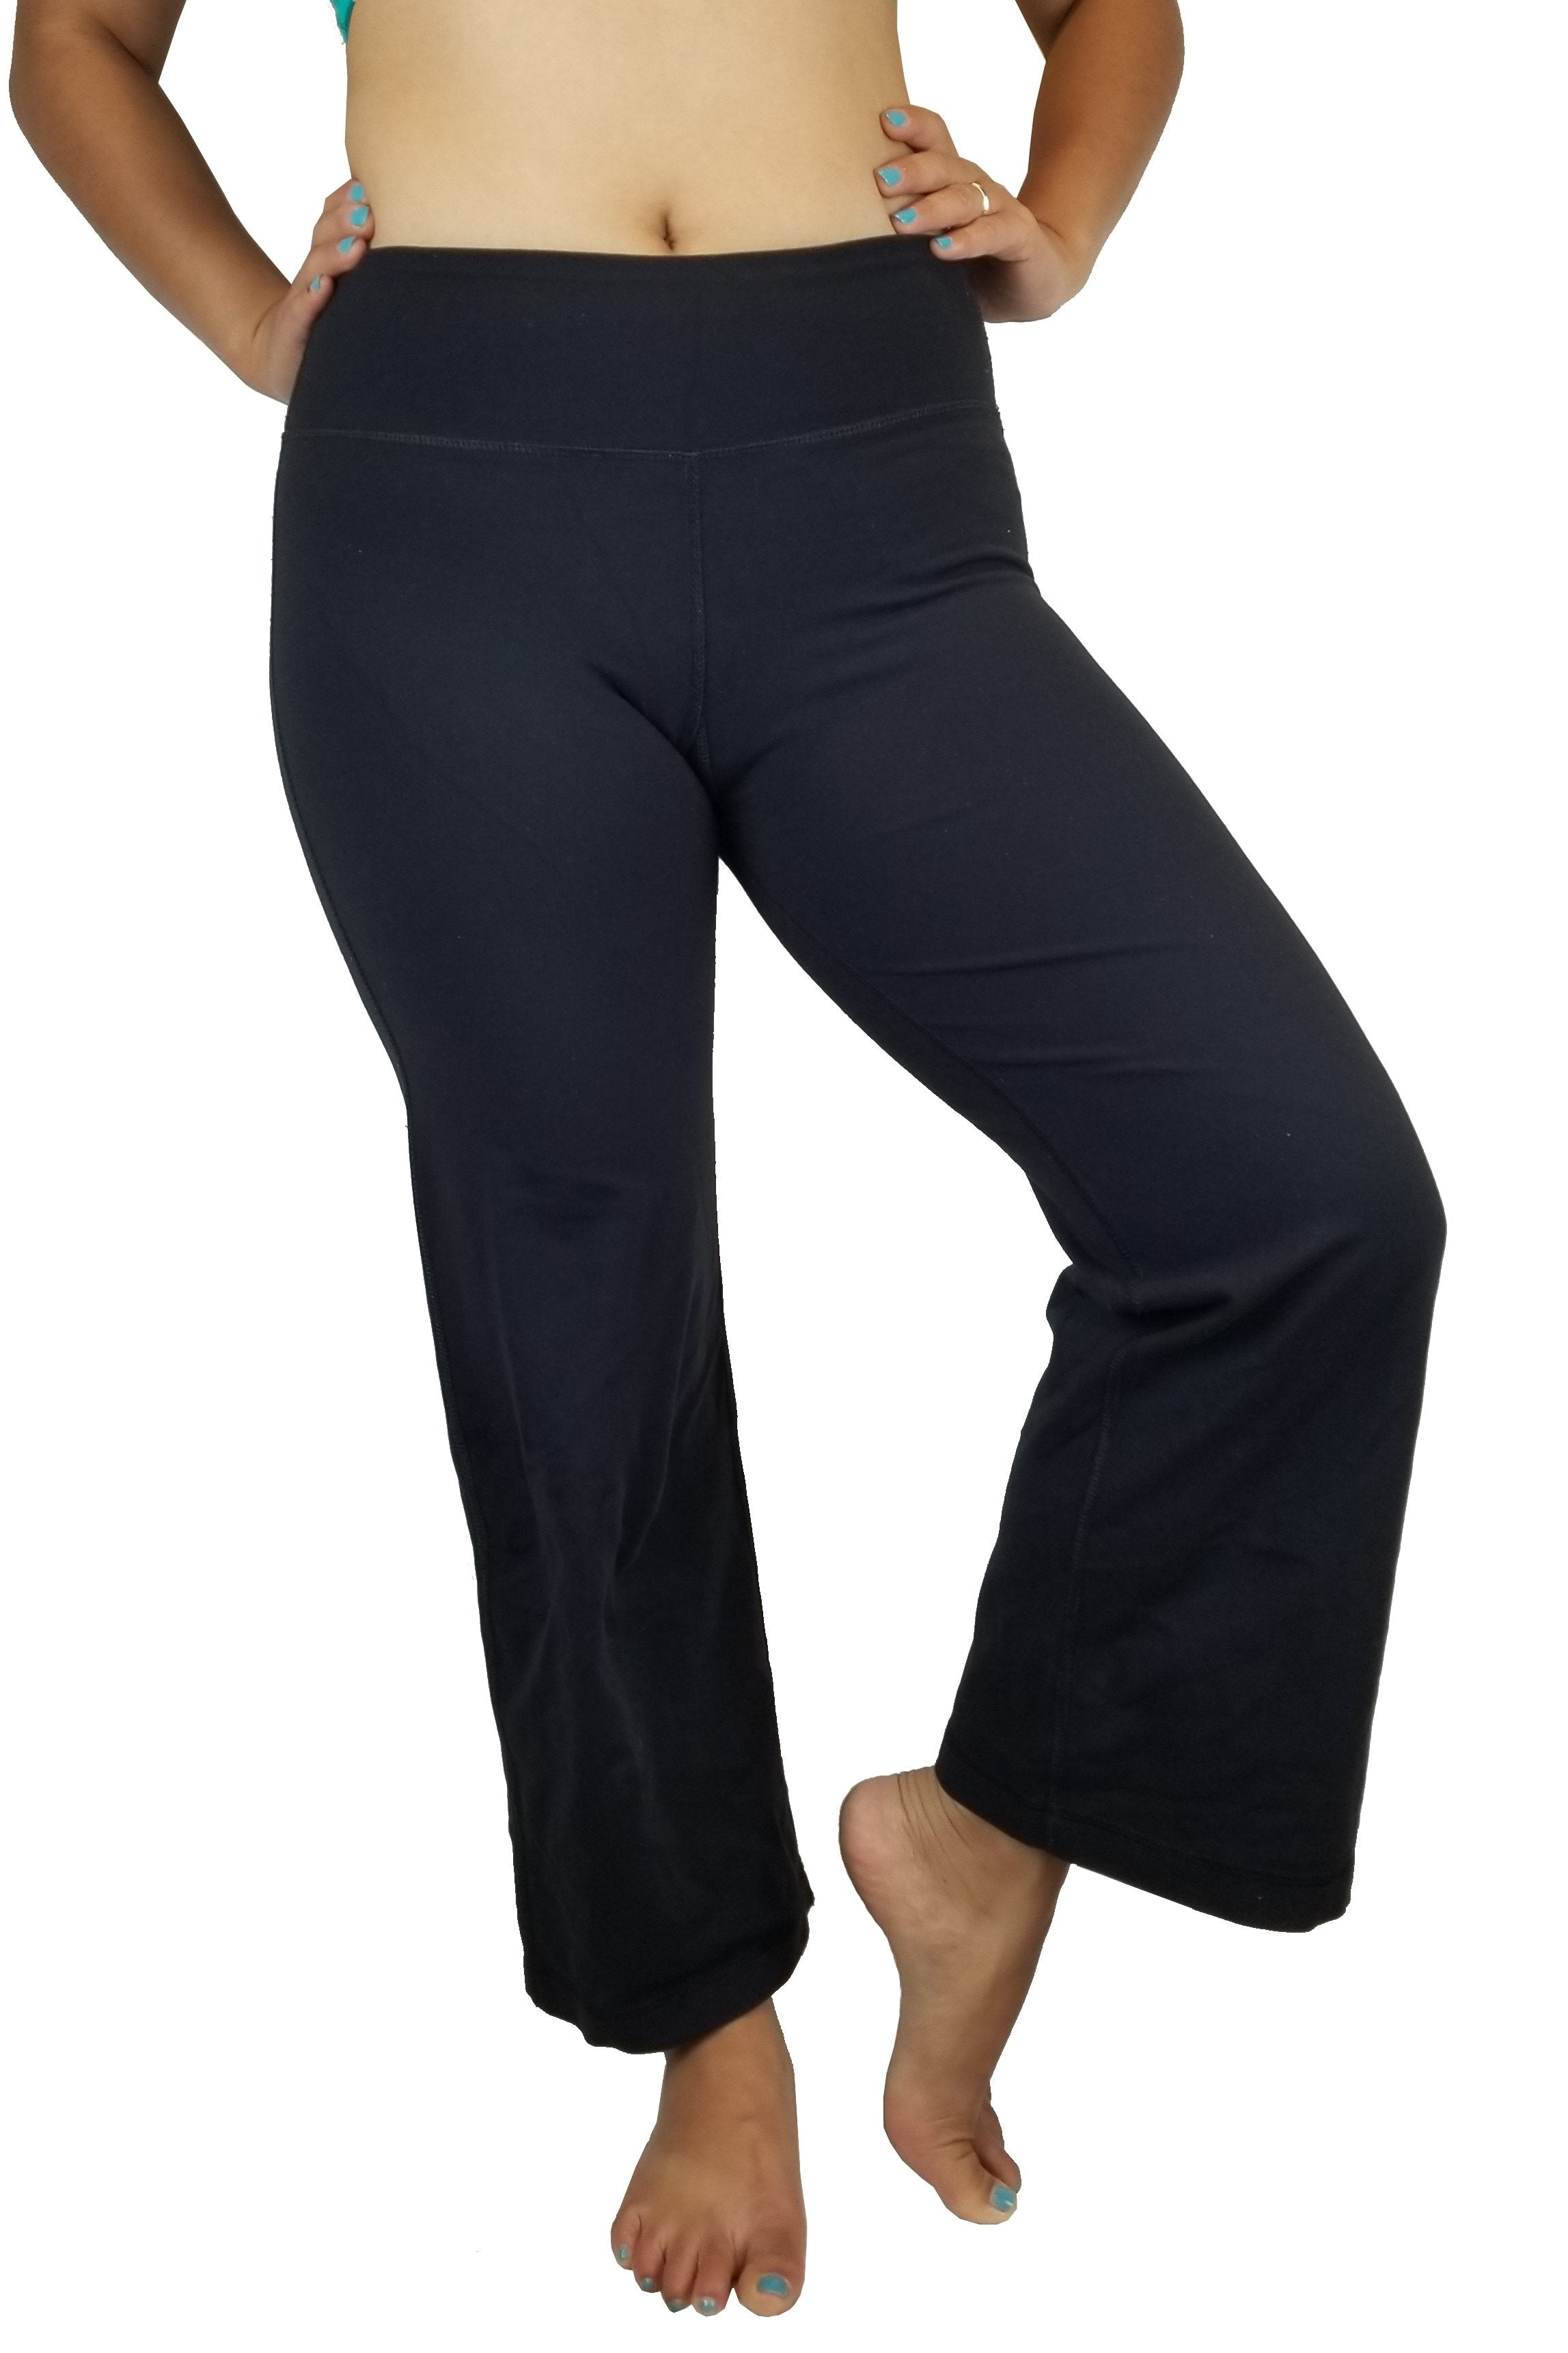 Lululemon Flare yoga pants, Flare design for comfort and breathability. Less of a Vancouver street wear? Lululemon size 4. https://info.lululemon.com/help/size-chart, Pink, Black, Nylon, Lycra, and Spandex, women's Activewear, women's Pink, Black Activewear, Lululemon women's Activewear, Yoga, yoga pants, women's athletic wear, women's work out clothes, women's comfortable pants, fitness, fit